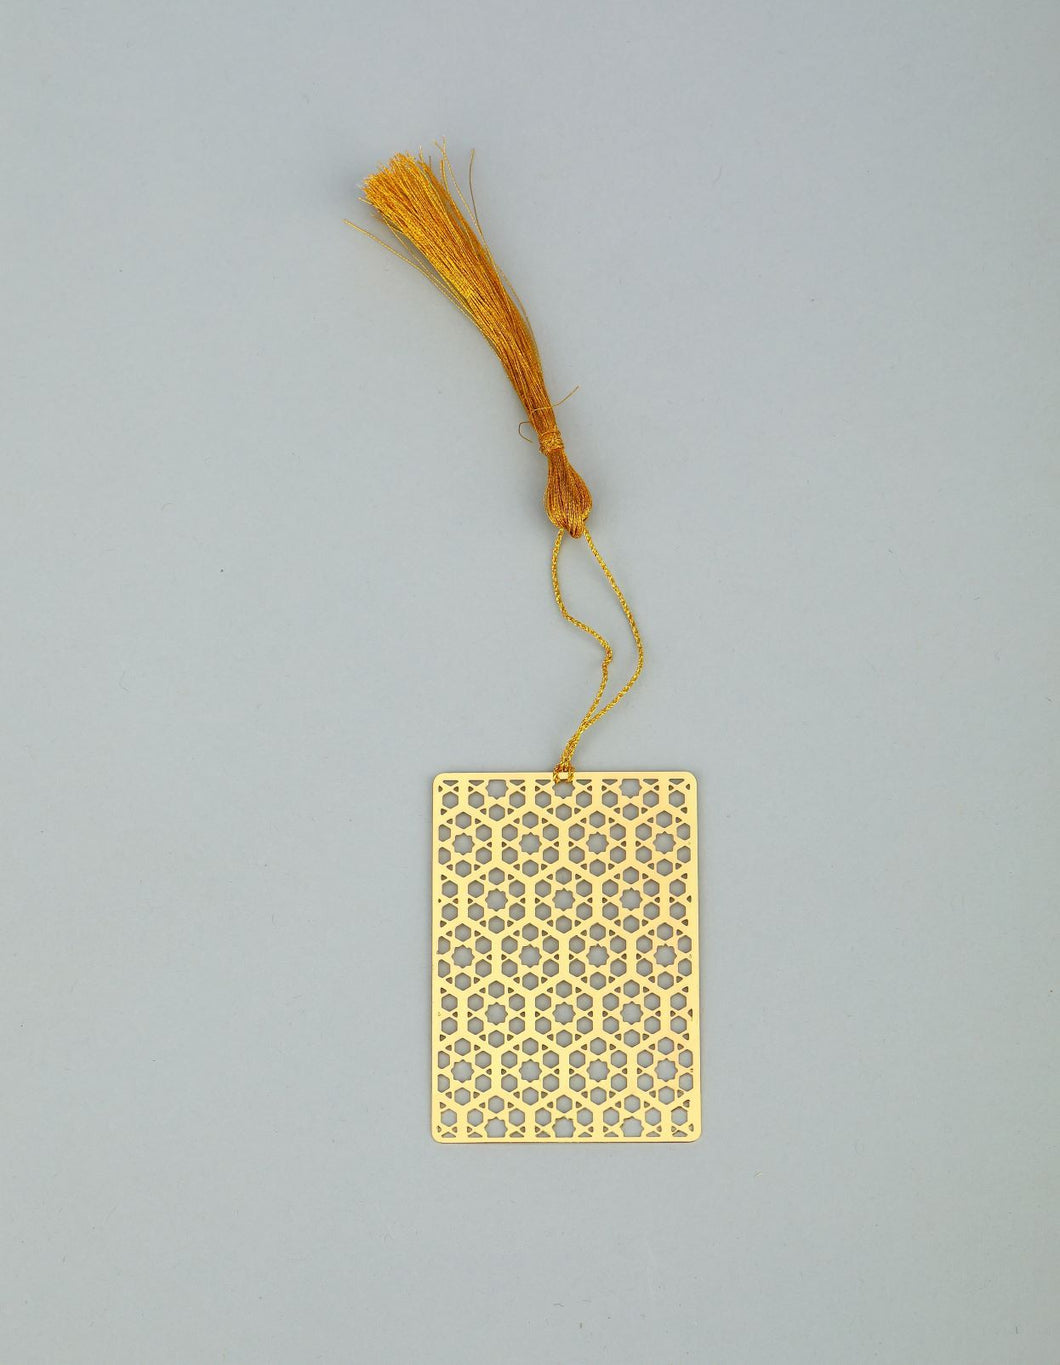 ADORAA's Hexa Taj Golden Brass Metal Bookmark